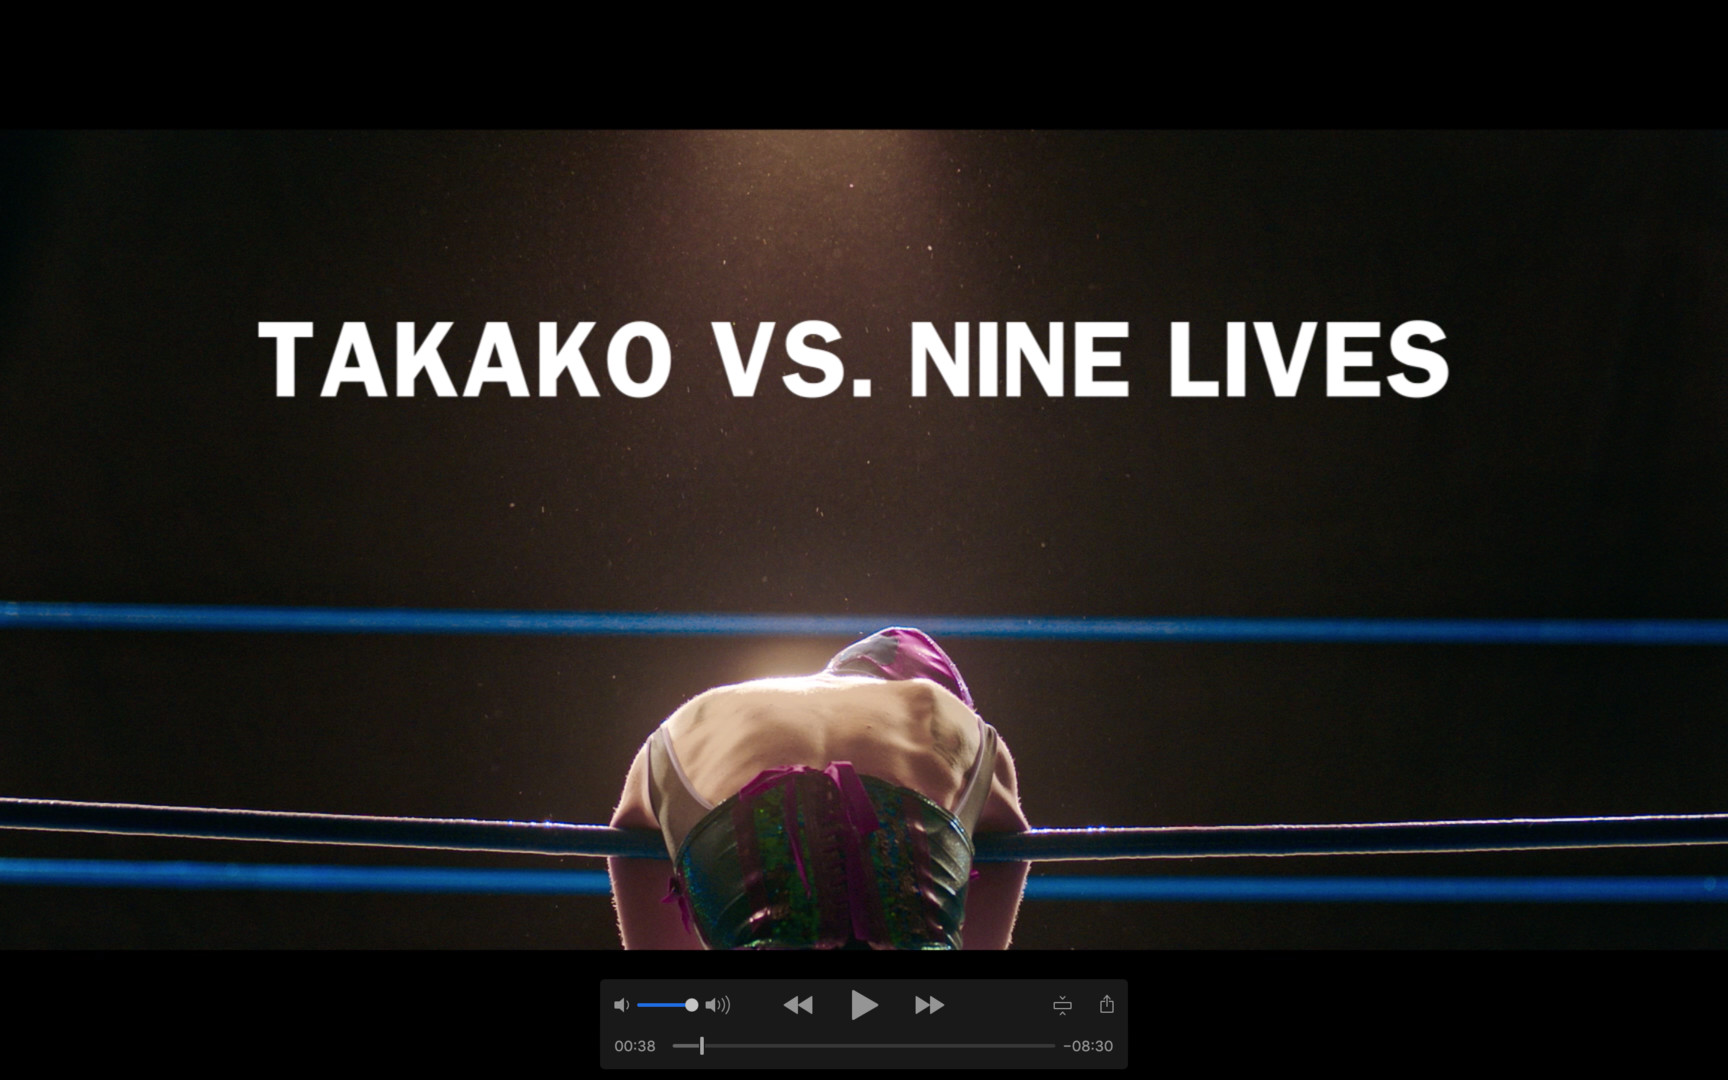 TAKAKO VS. NINE LIVES